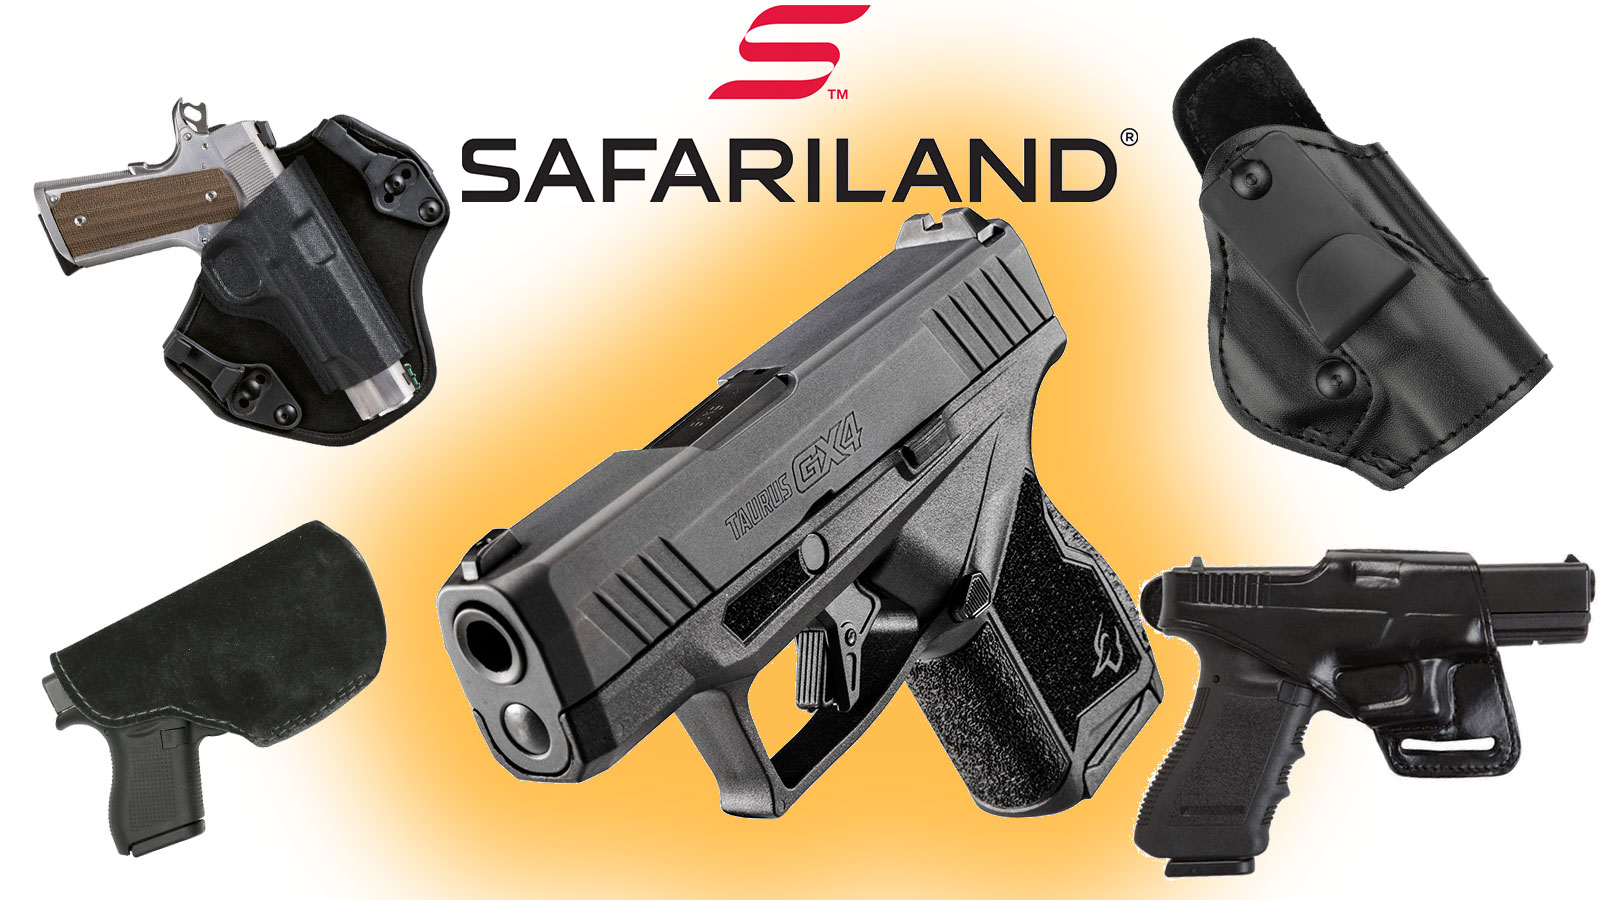 New Taurus GX4 Holster Options Introduced by Safariland and Bianchi